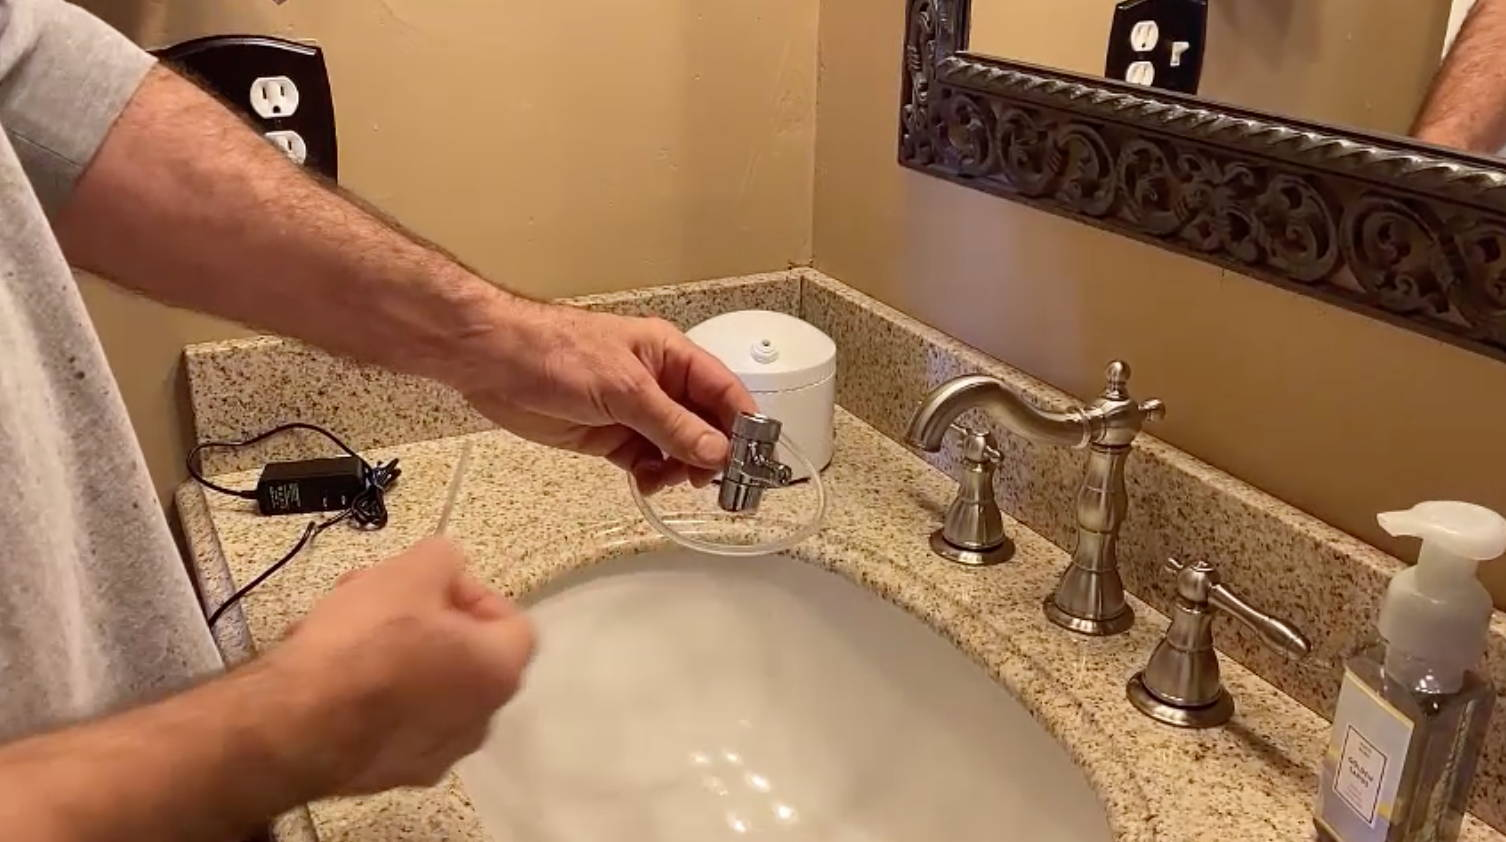 install an aquapurr at a leisurely pace on a bathroom faucet